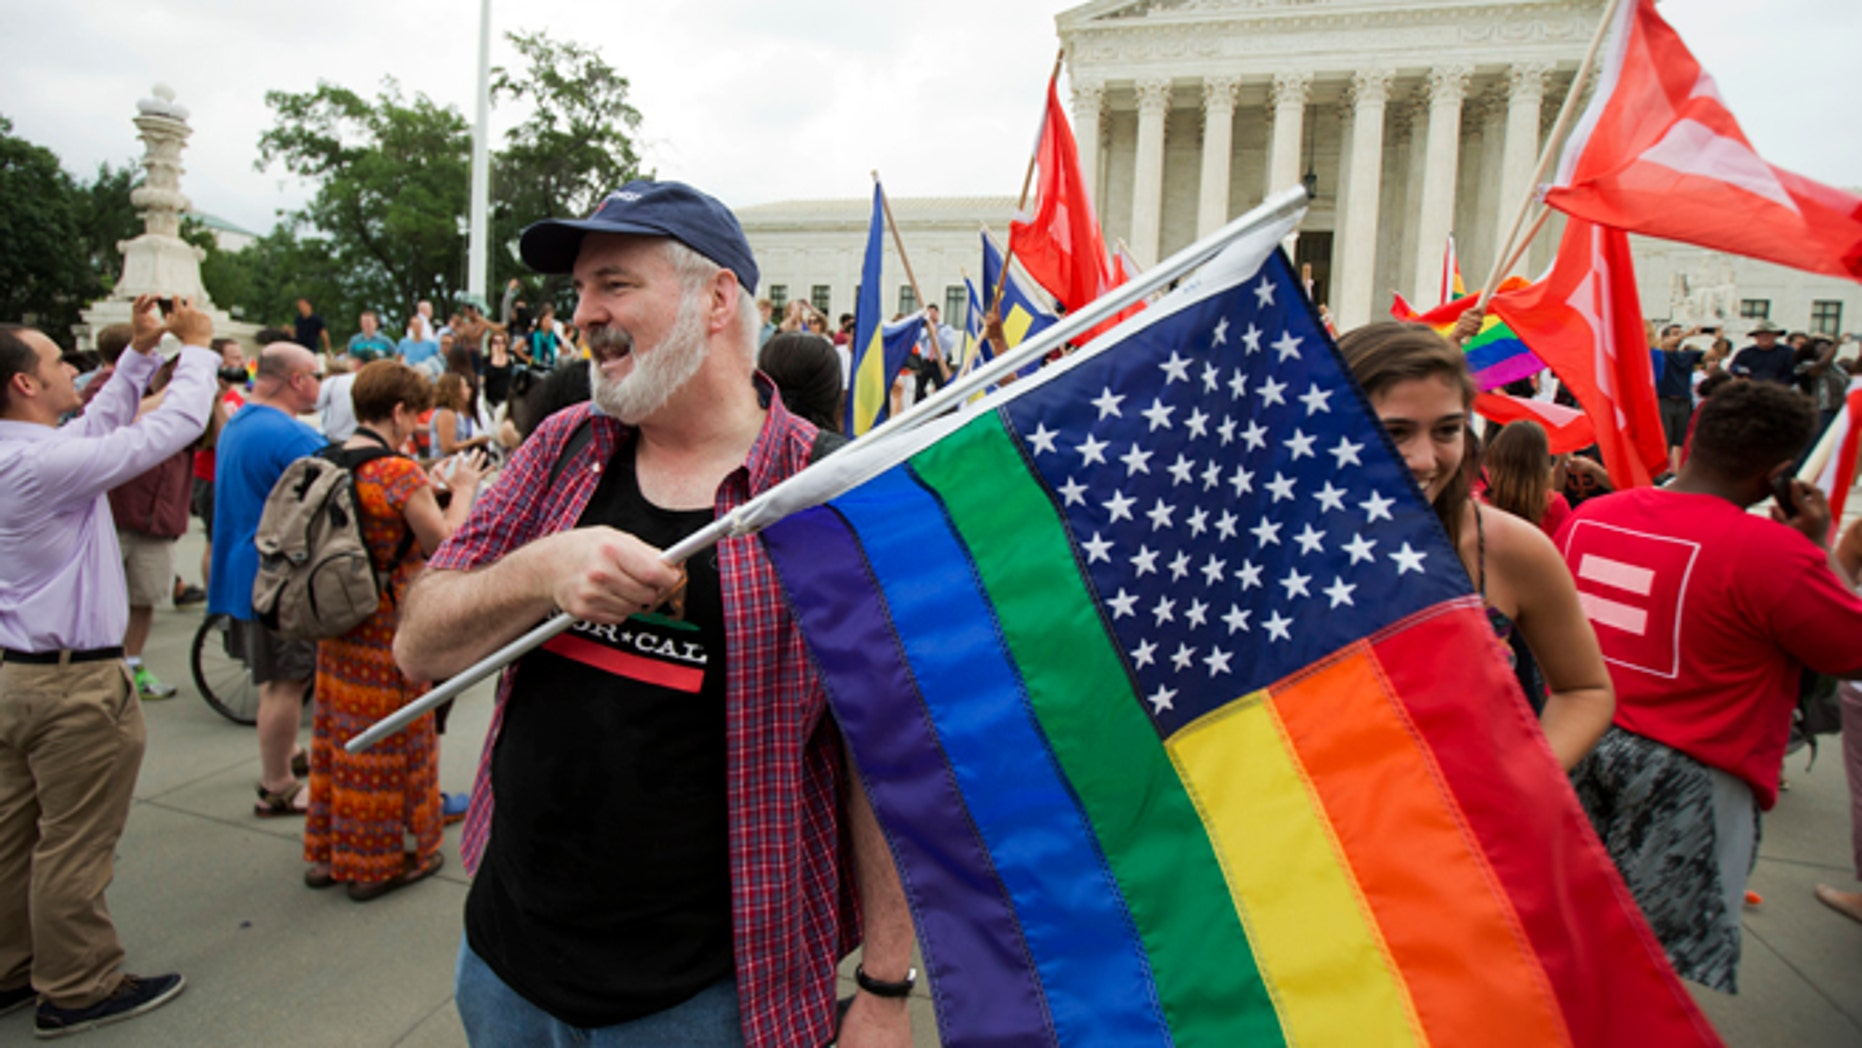 June 26, 2015: Supporters celebrate outside the U.S. Supreme Court in Washington after the court declared that same-sex couples have a right to marry anywhere in the United States.